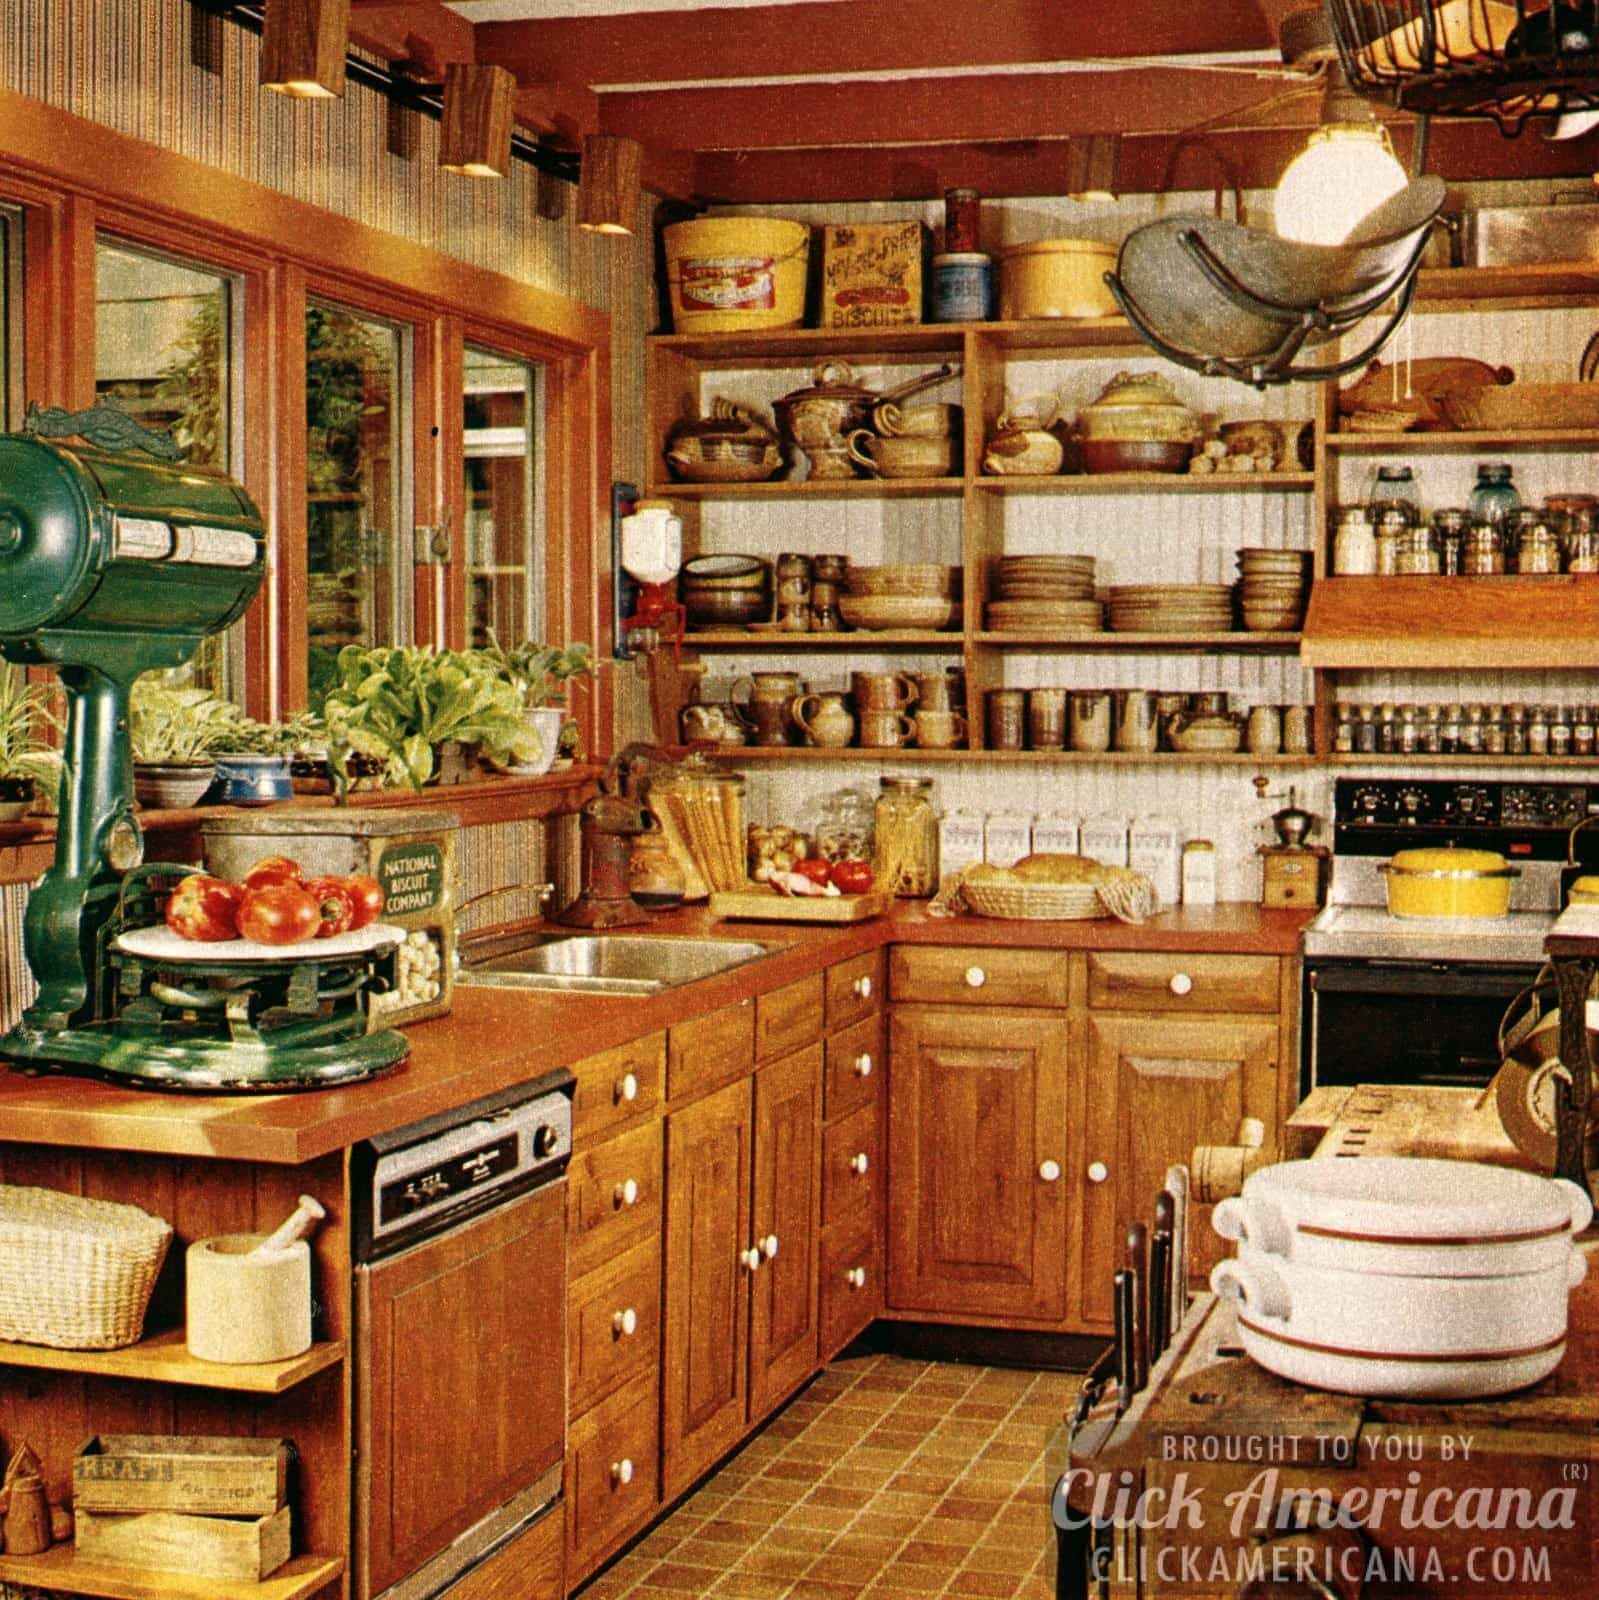 Glorious designer kitchen remodels 1978  Click Americana